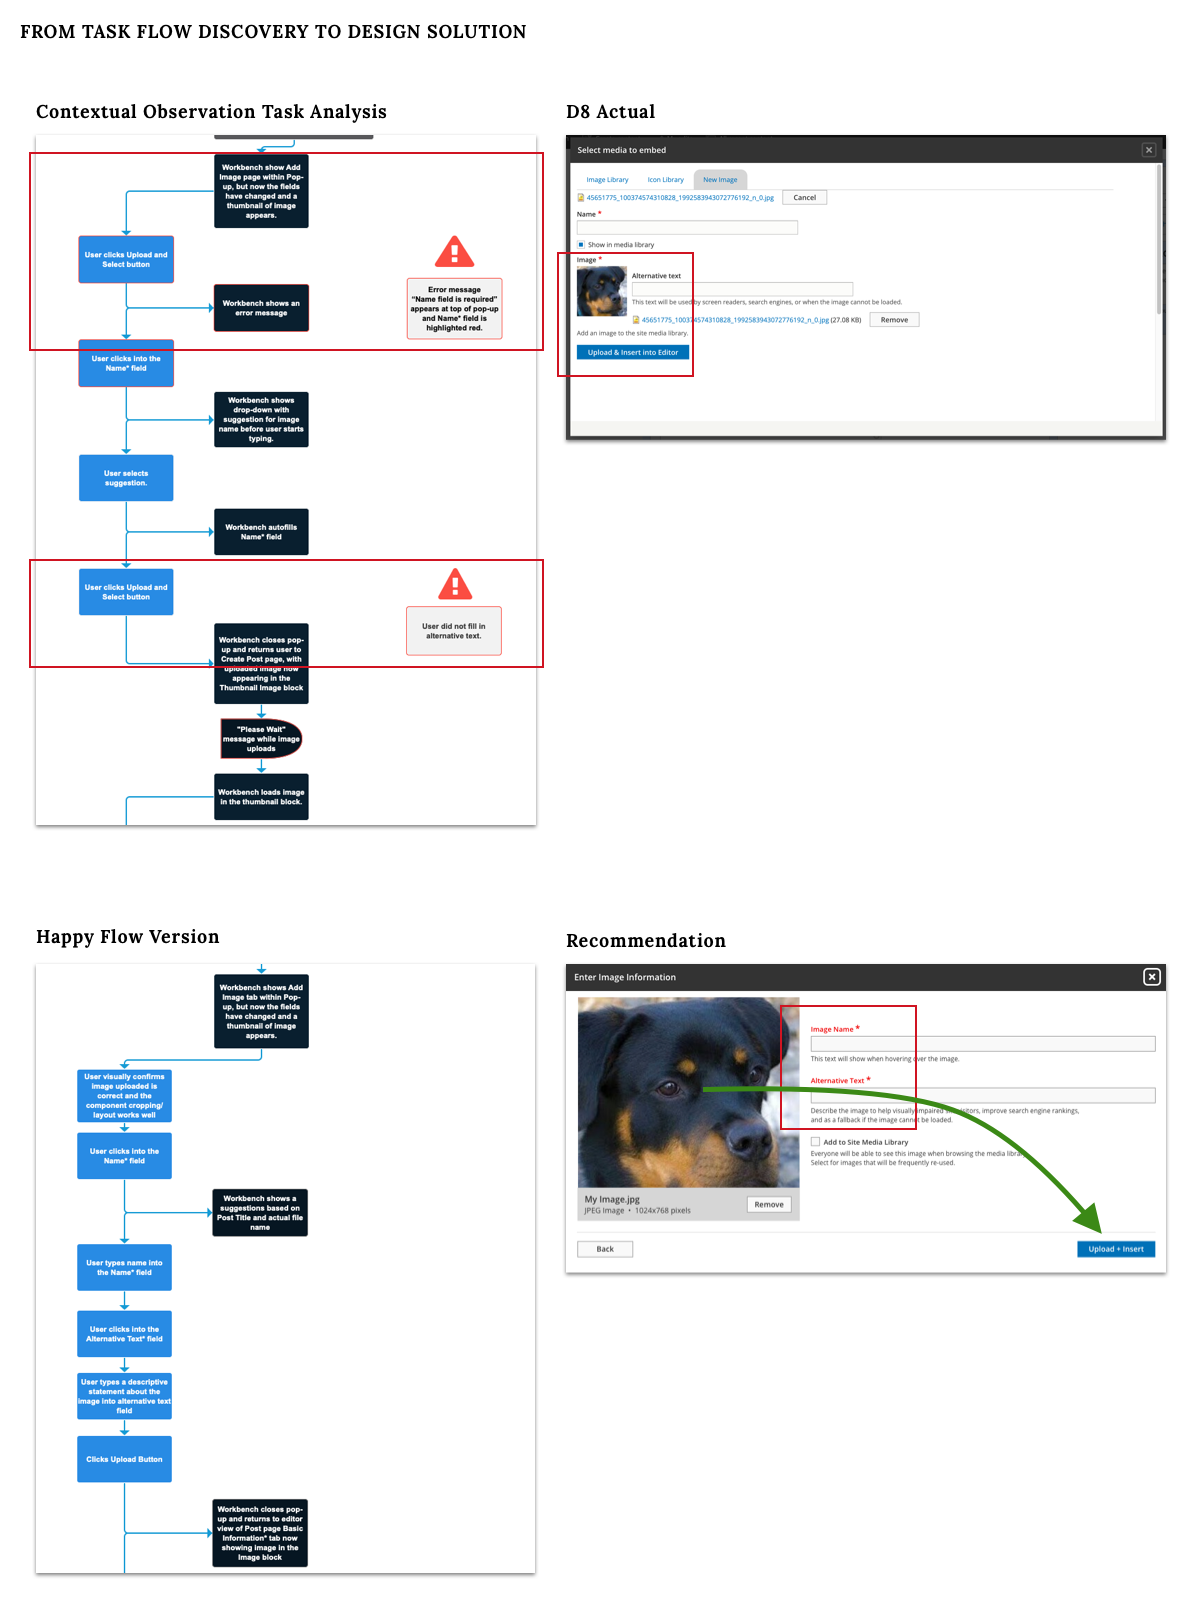 Comparison of current task flow for image upload with current pop-up layout that encourages users to skip required fields and our recommendation which we hypothesize would support users better.